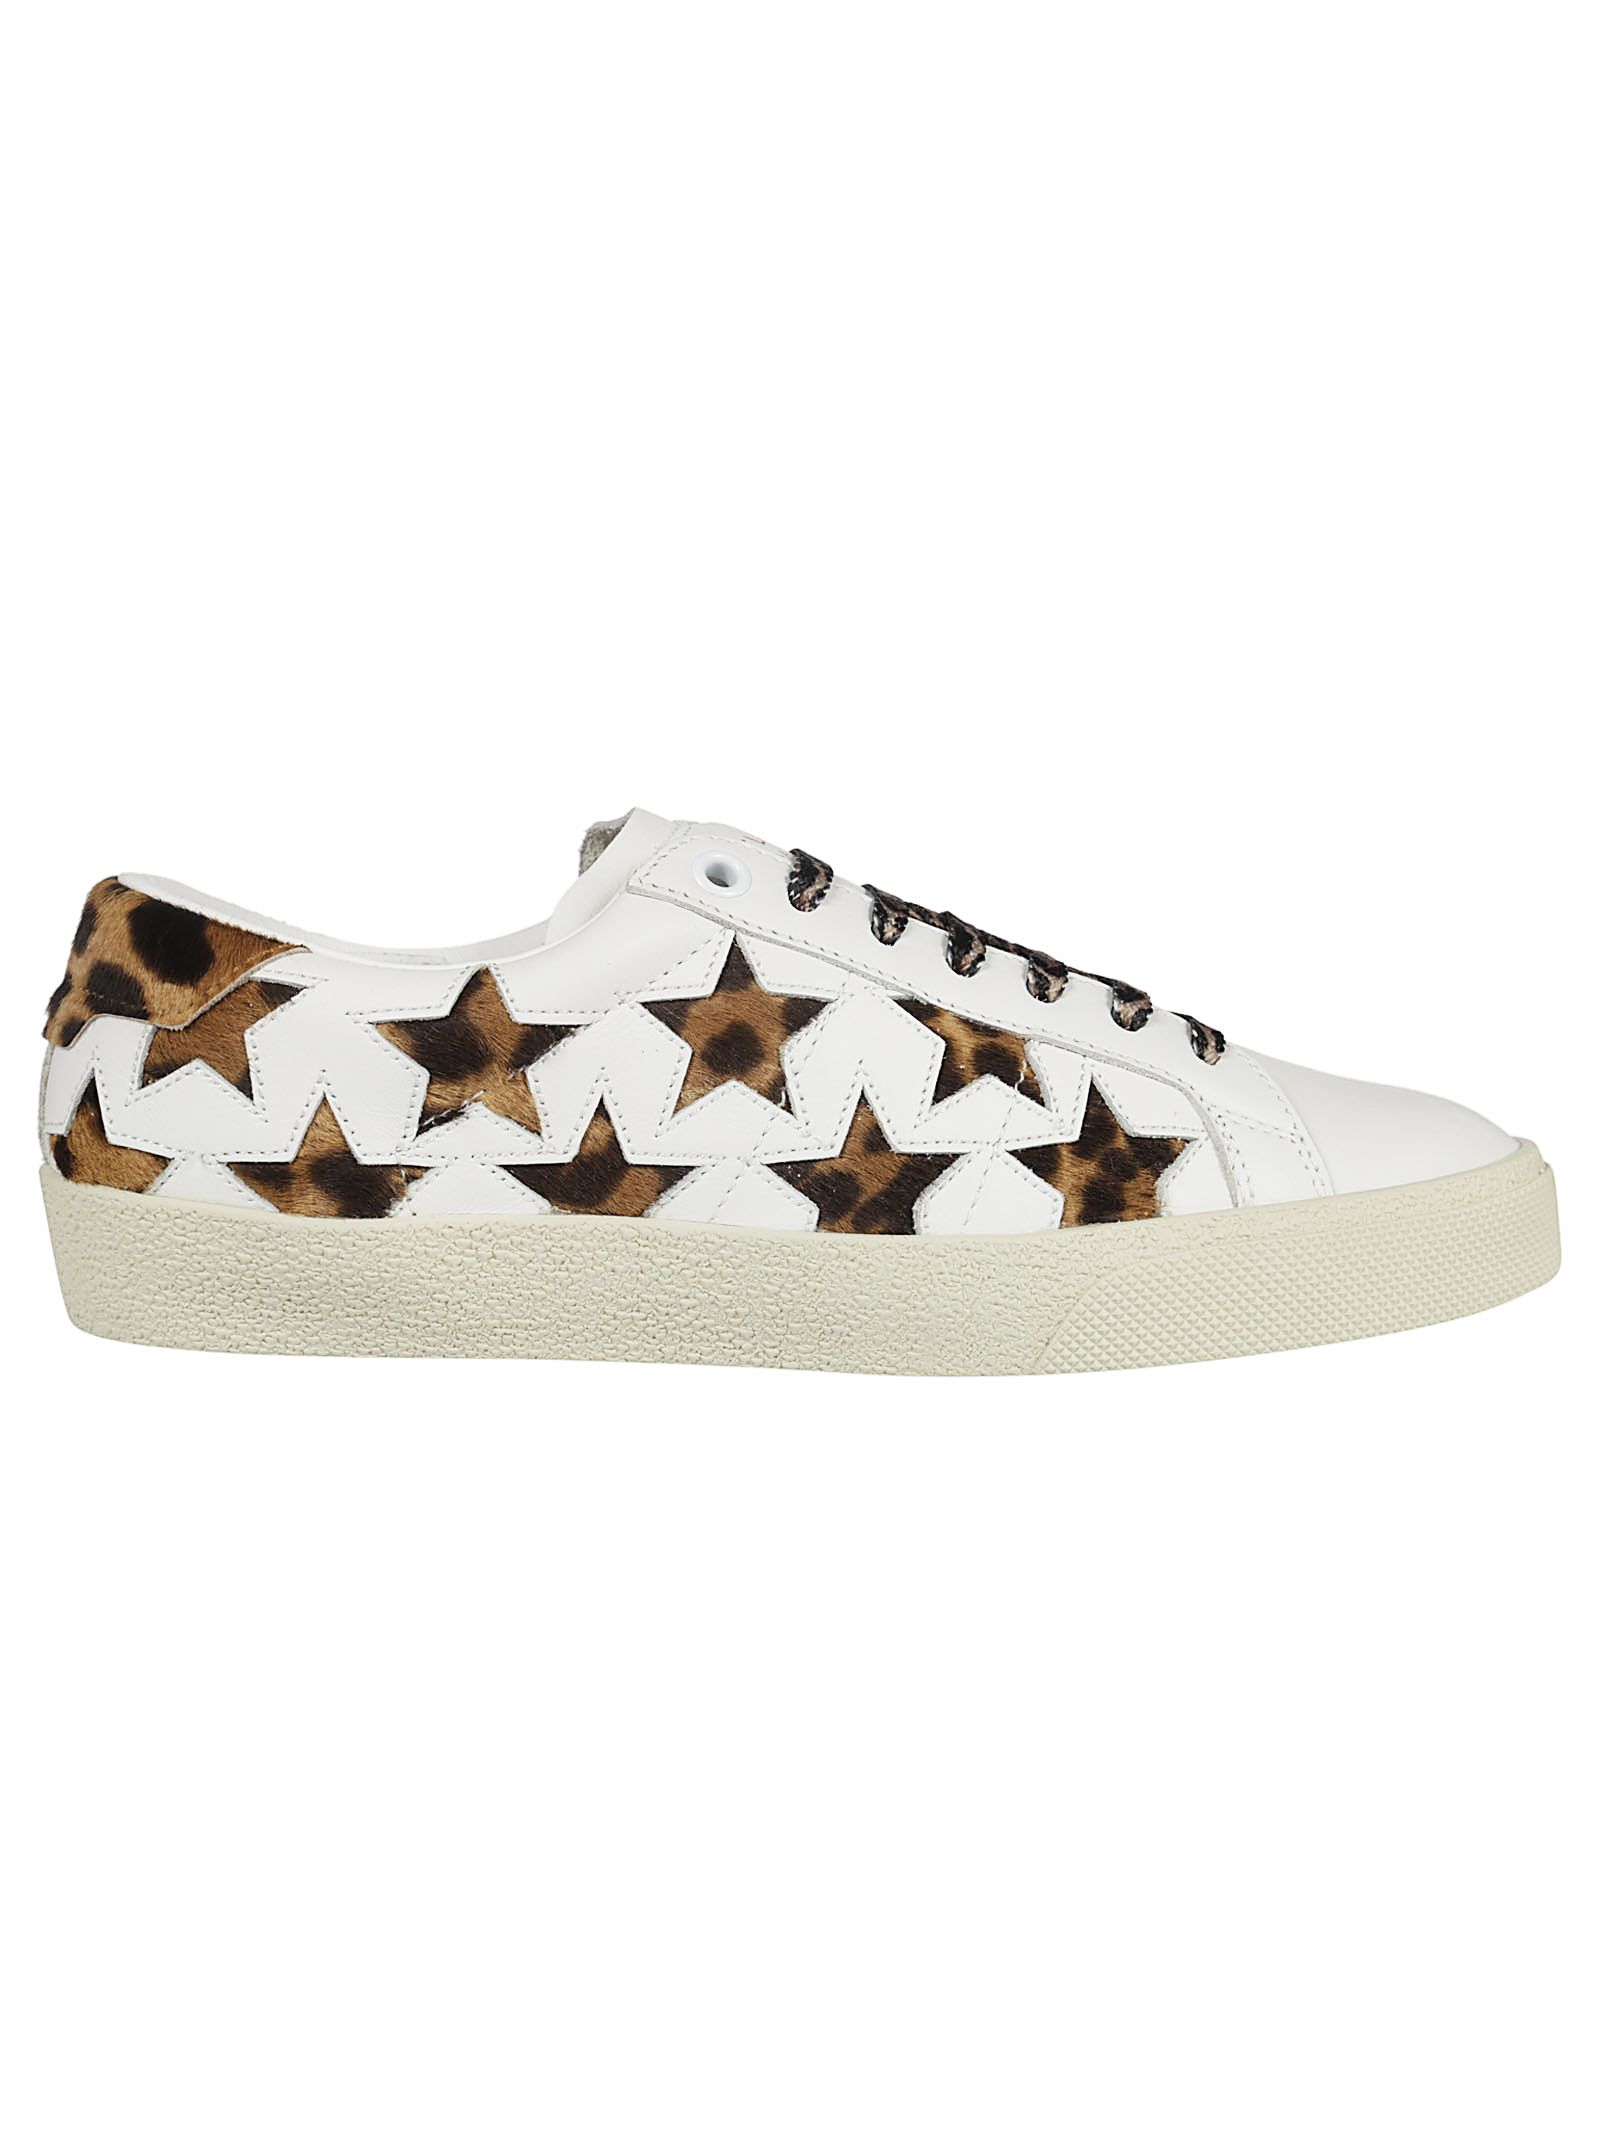 LEOPARD SIGNATURE COURT SL-06 CALIFORNIA SNEAKERS